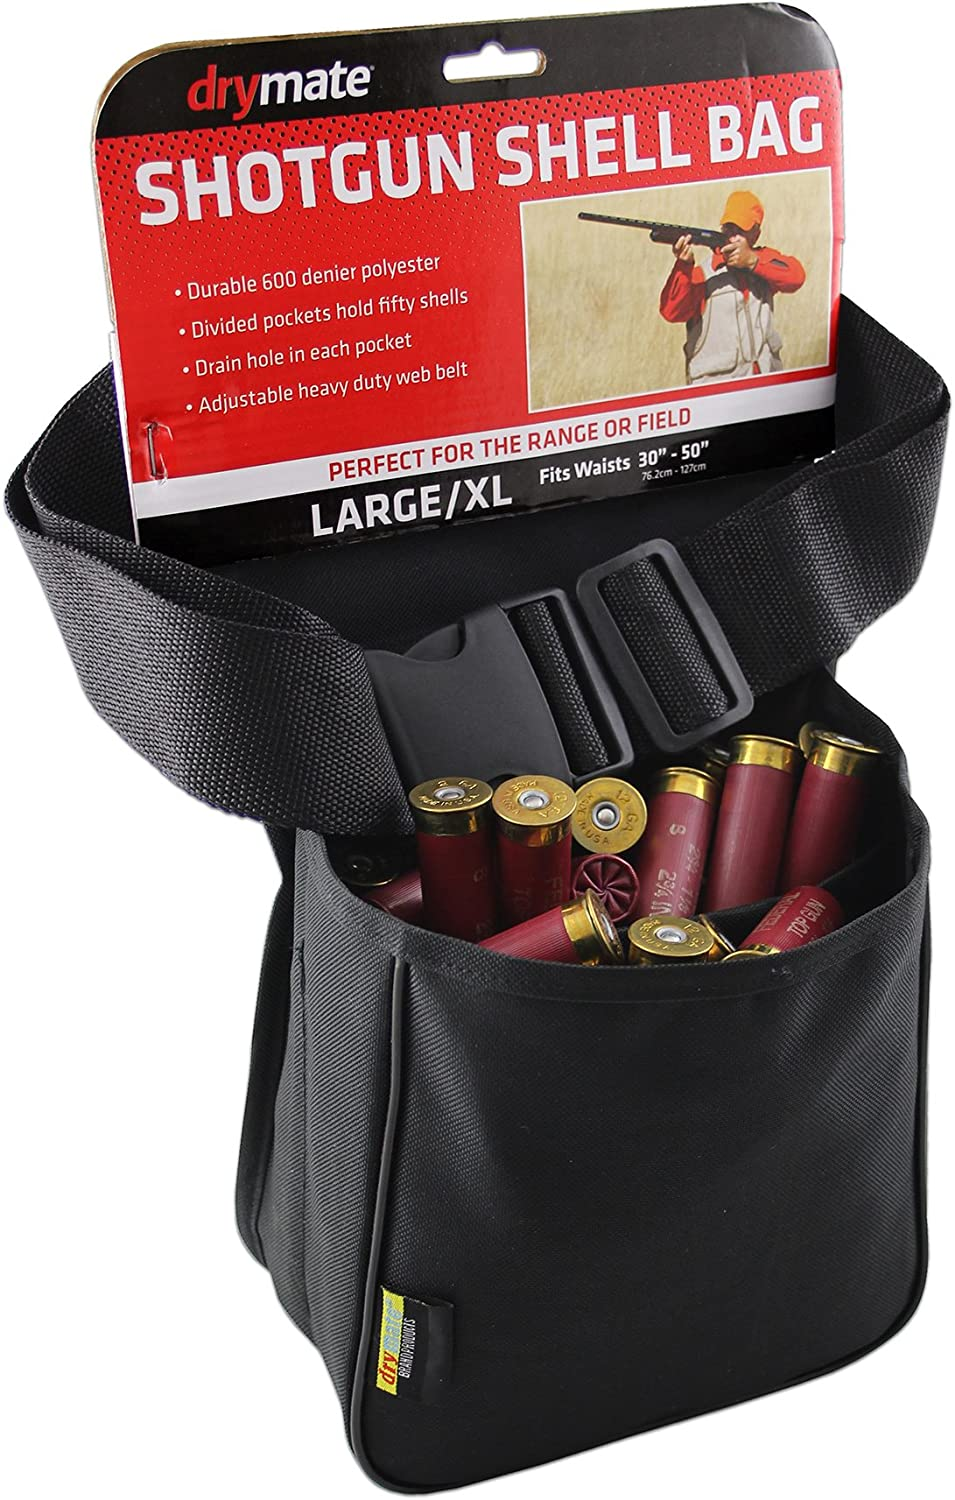 Drymate DSB-WBB Deluxe Five Pocket Shotgun Shell Bag with Belt NEW One Size